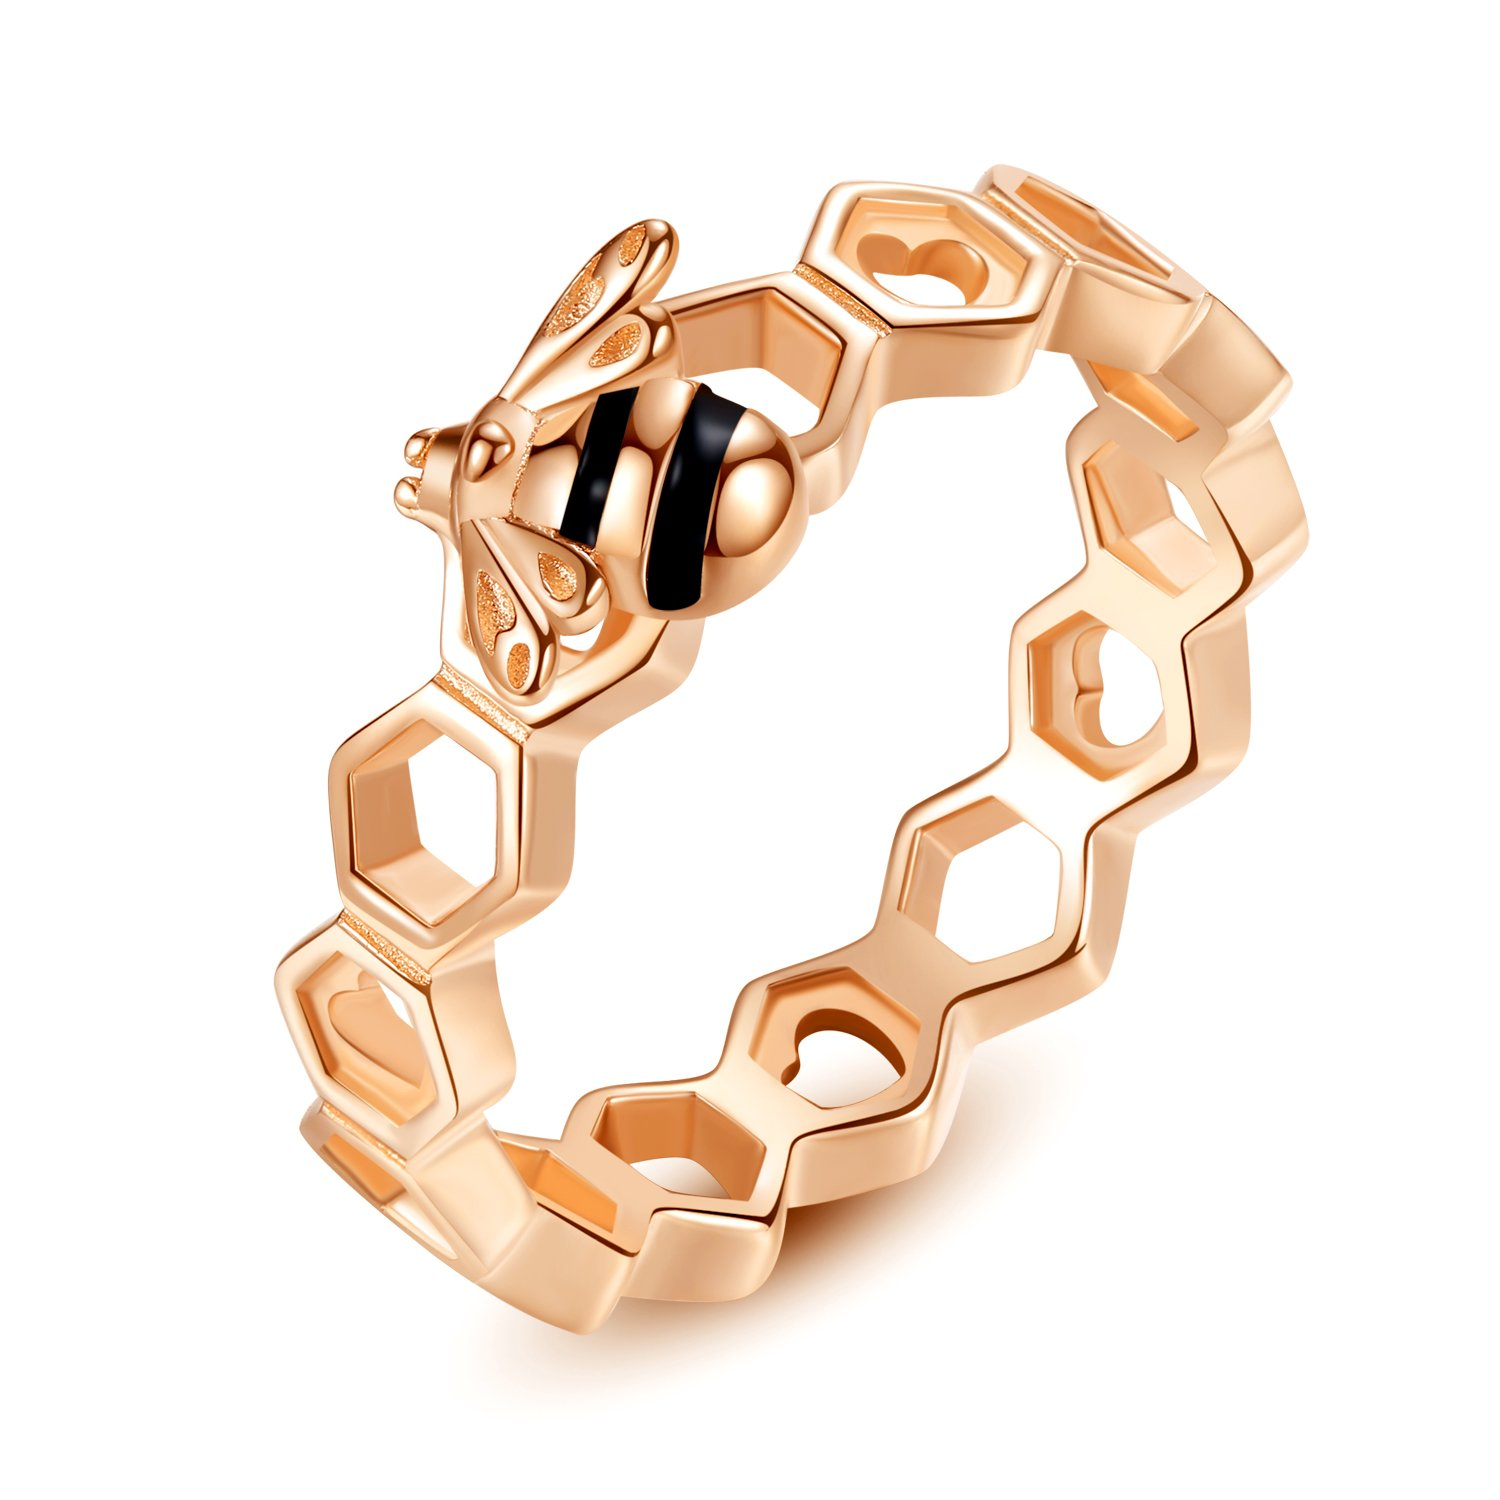 Presentski Rose Gold Beehive Charm Ring Birthday Gift for Women and Girls